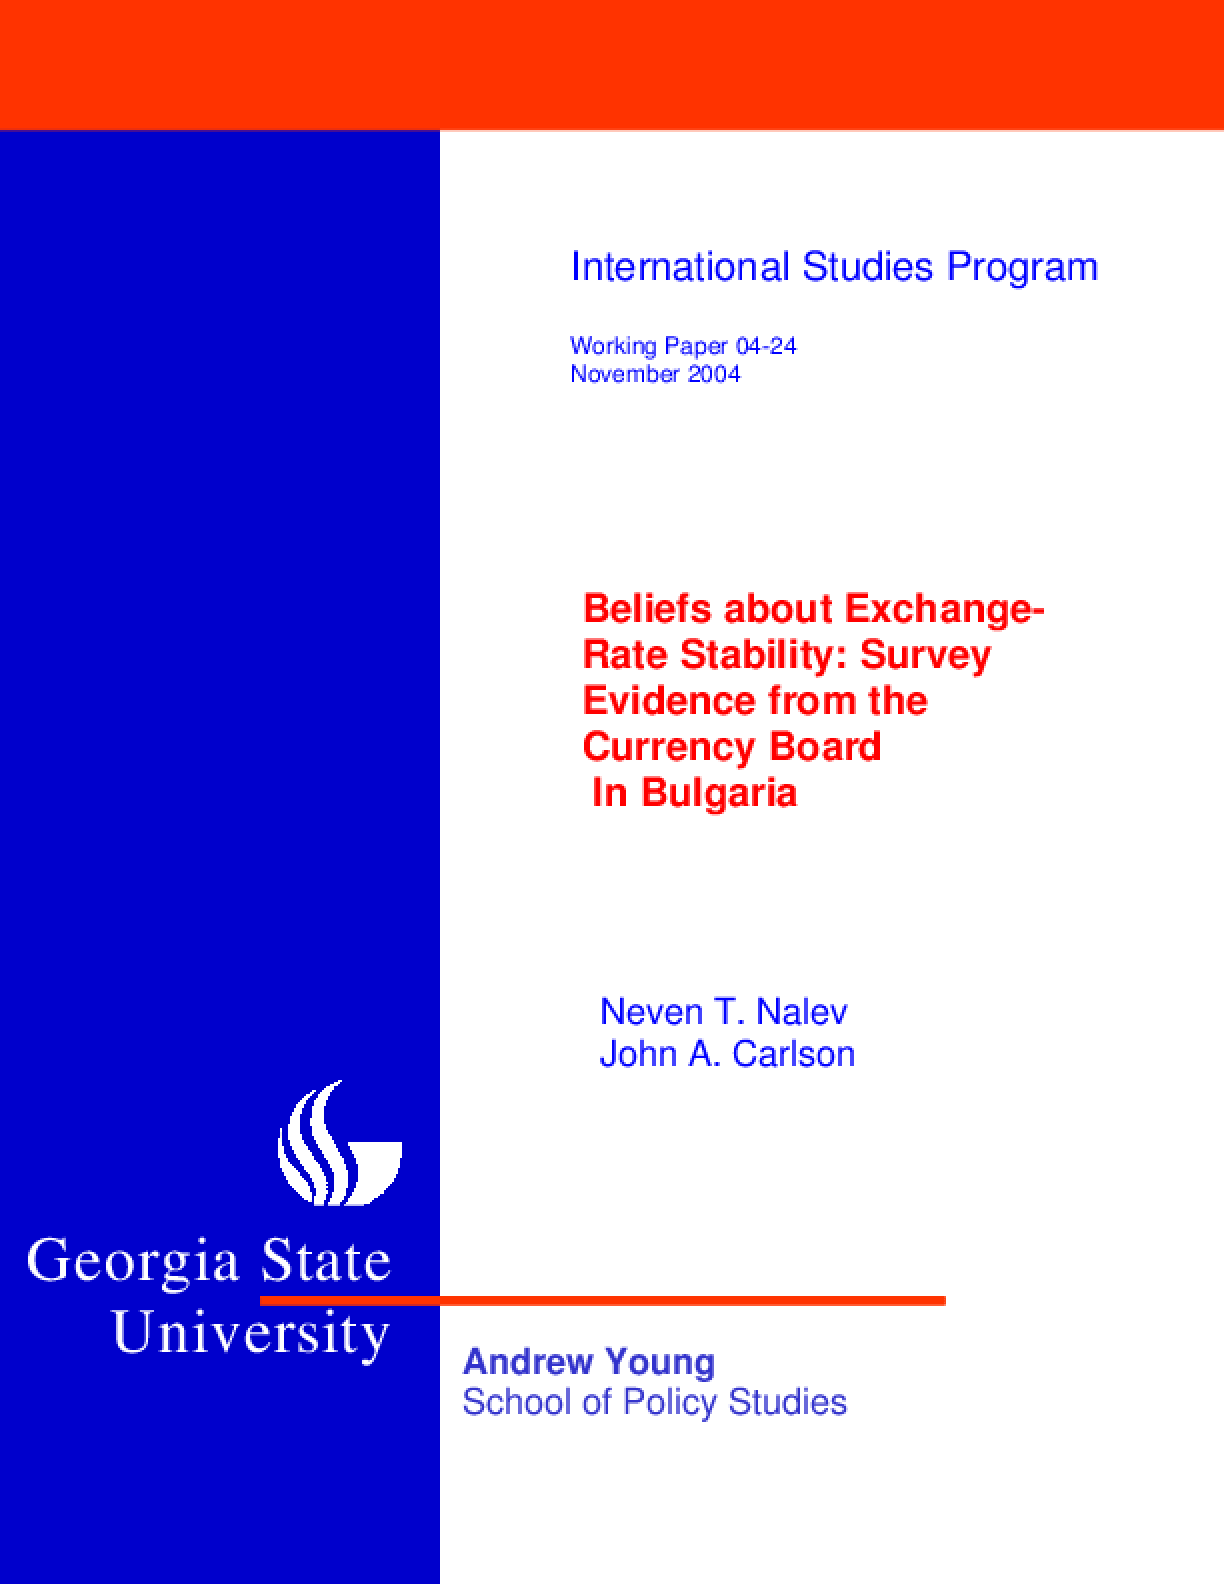 Beliefs about Exchange-Rate Stability: Survey Evidence from the Currency Board in Bulgaria